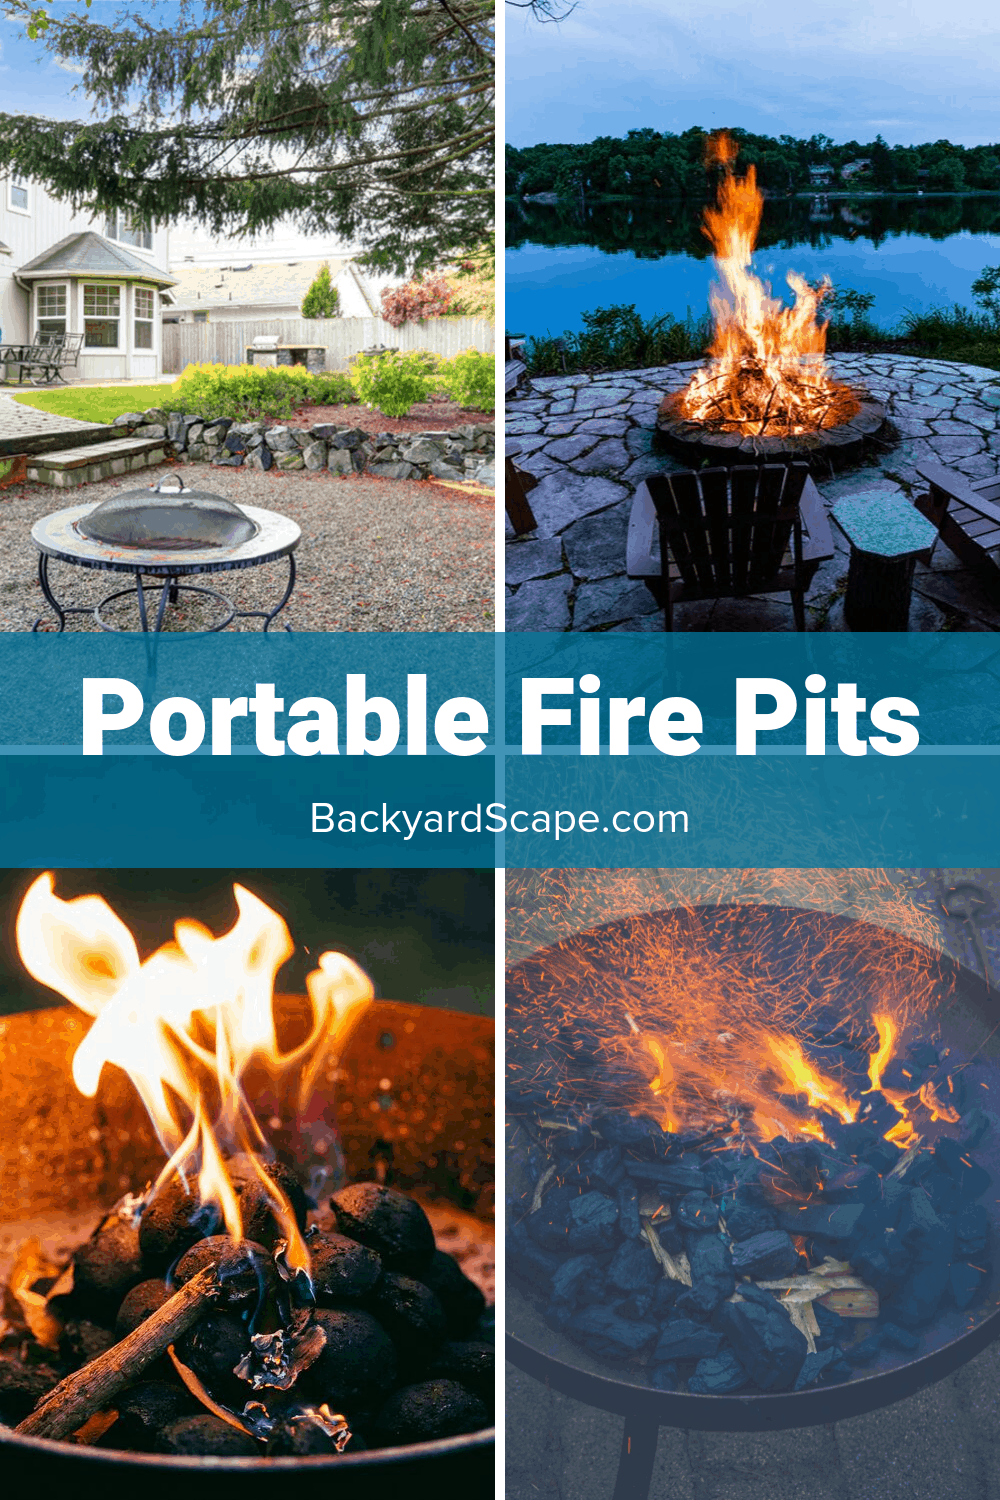 How Portable Fire Pits Work: a Step-by-Step Guide ...